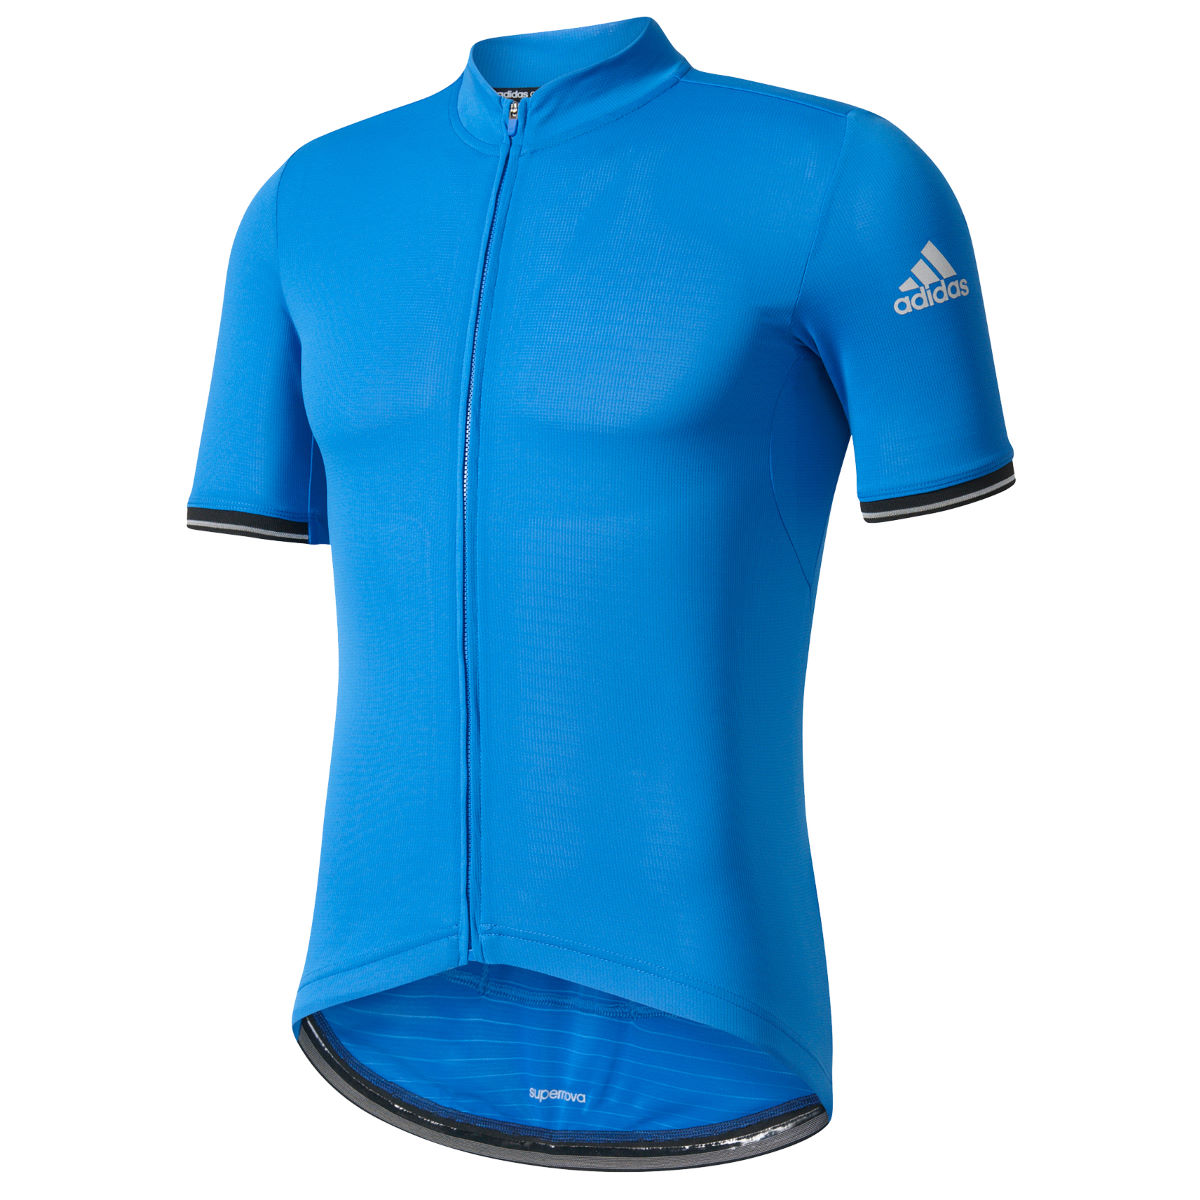 Maillot Adidas Cycling Clima Chill (manches courtes) - M Bleu